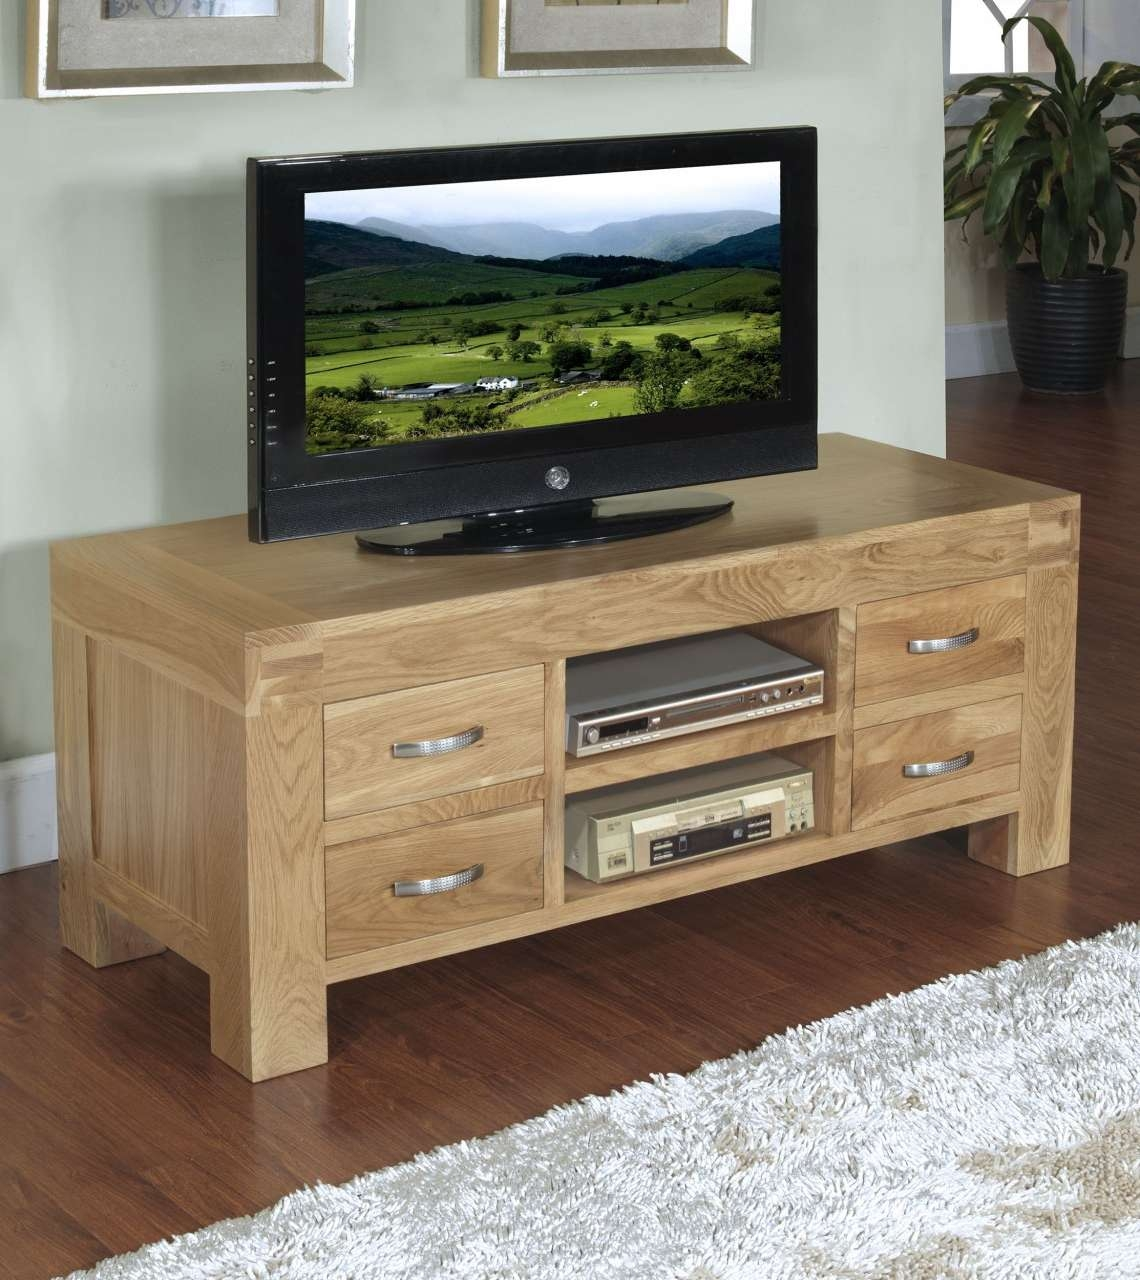 Tv Stands : Oak Tv Units Cabinets Furniture Uk Wooden Corner Solid With Regard To Oak Tv Cabinets For Flat Screens (View 17 of 20)